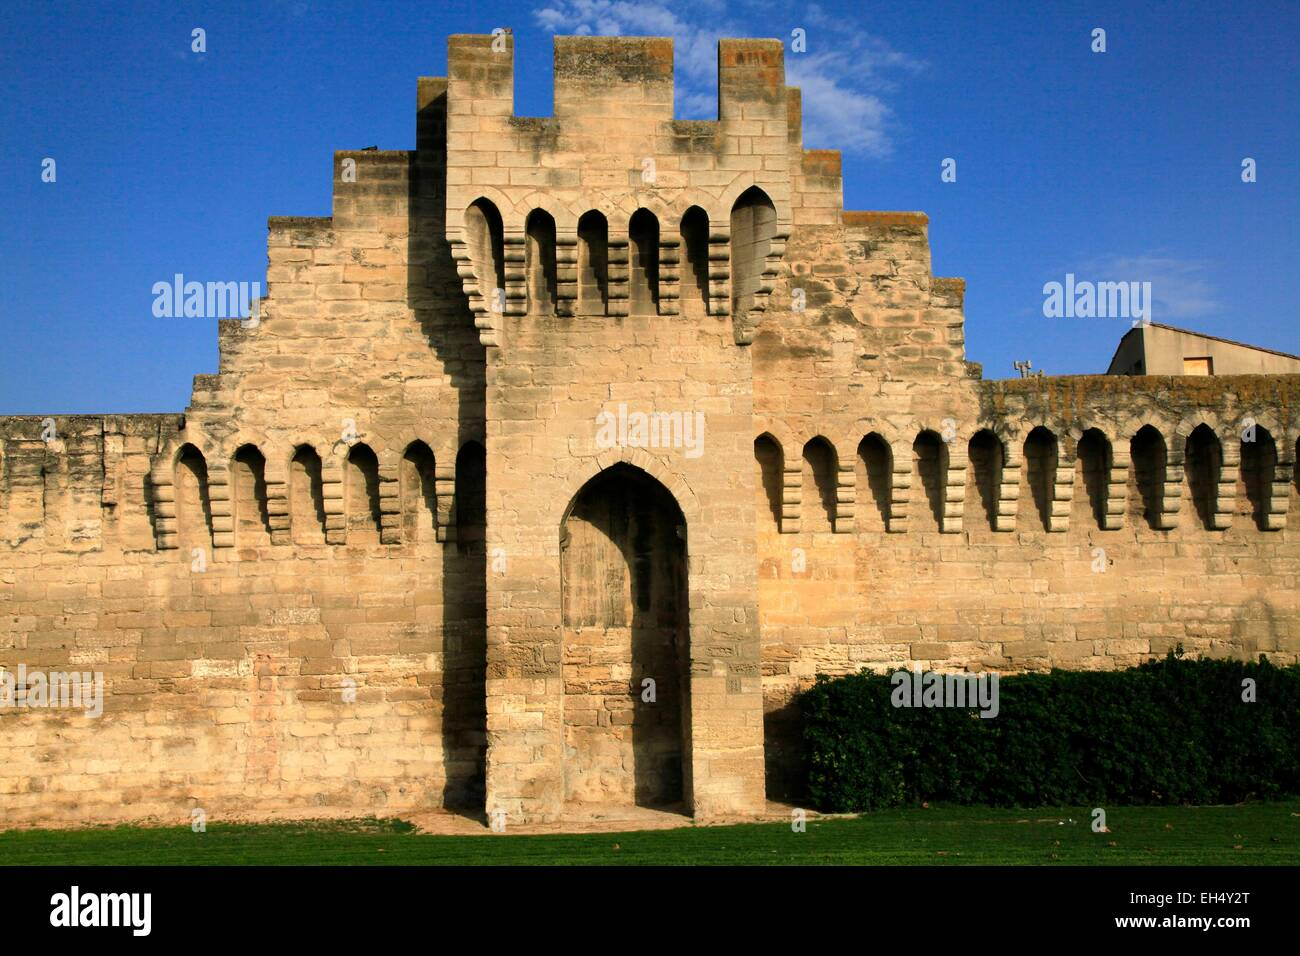 France Vaucluse Avignon Historical Centre Listed As World Heritage Stock Photo Alamy